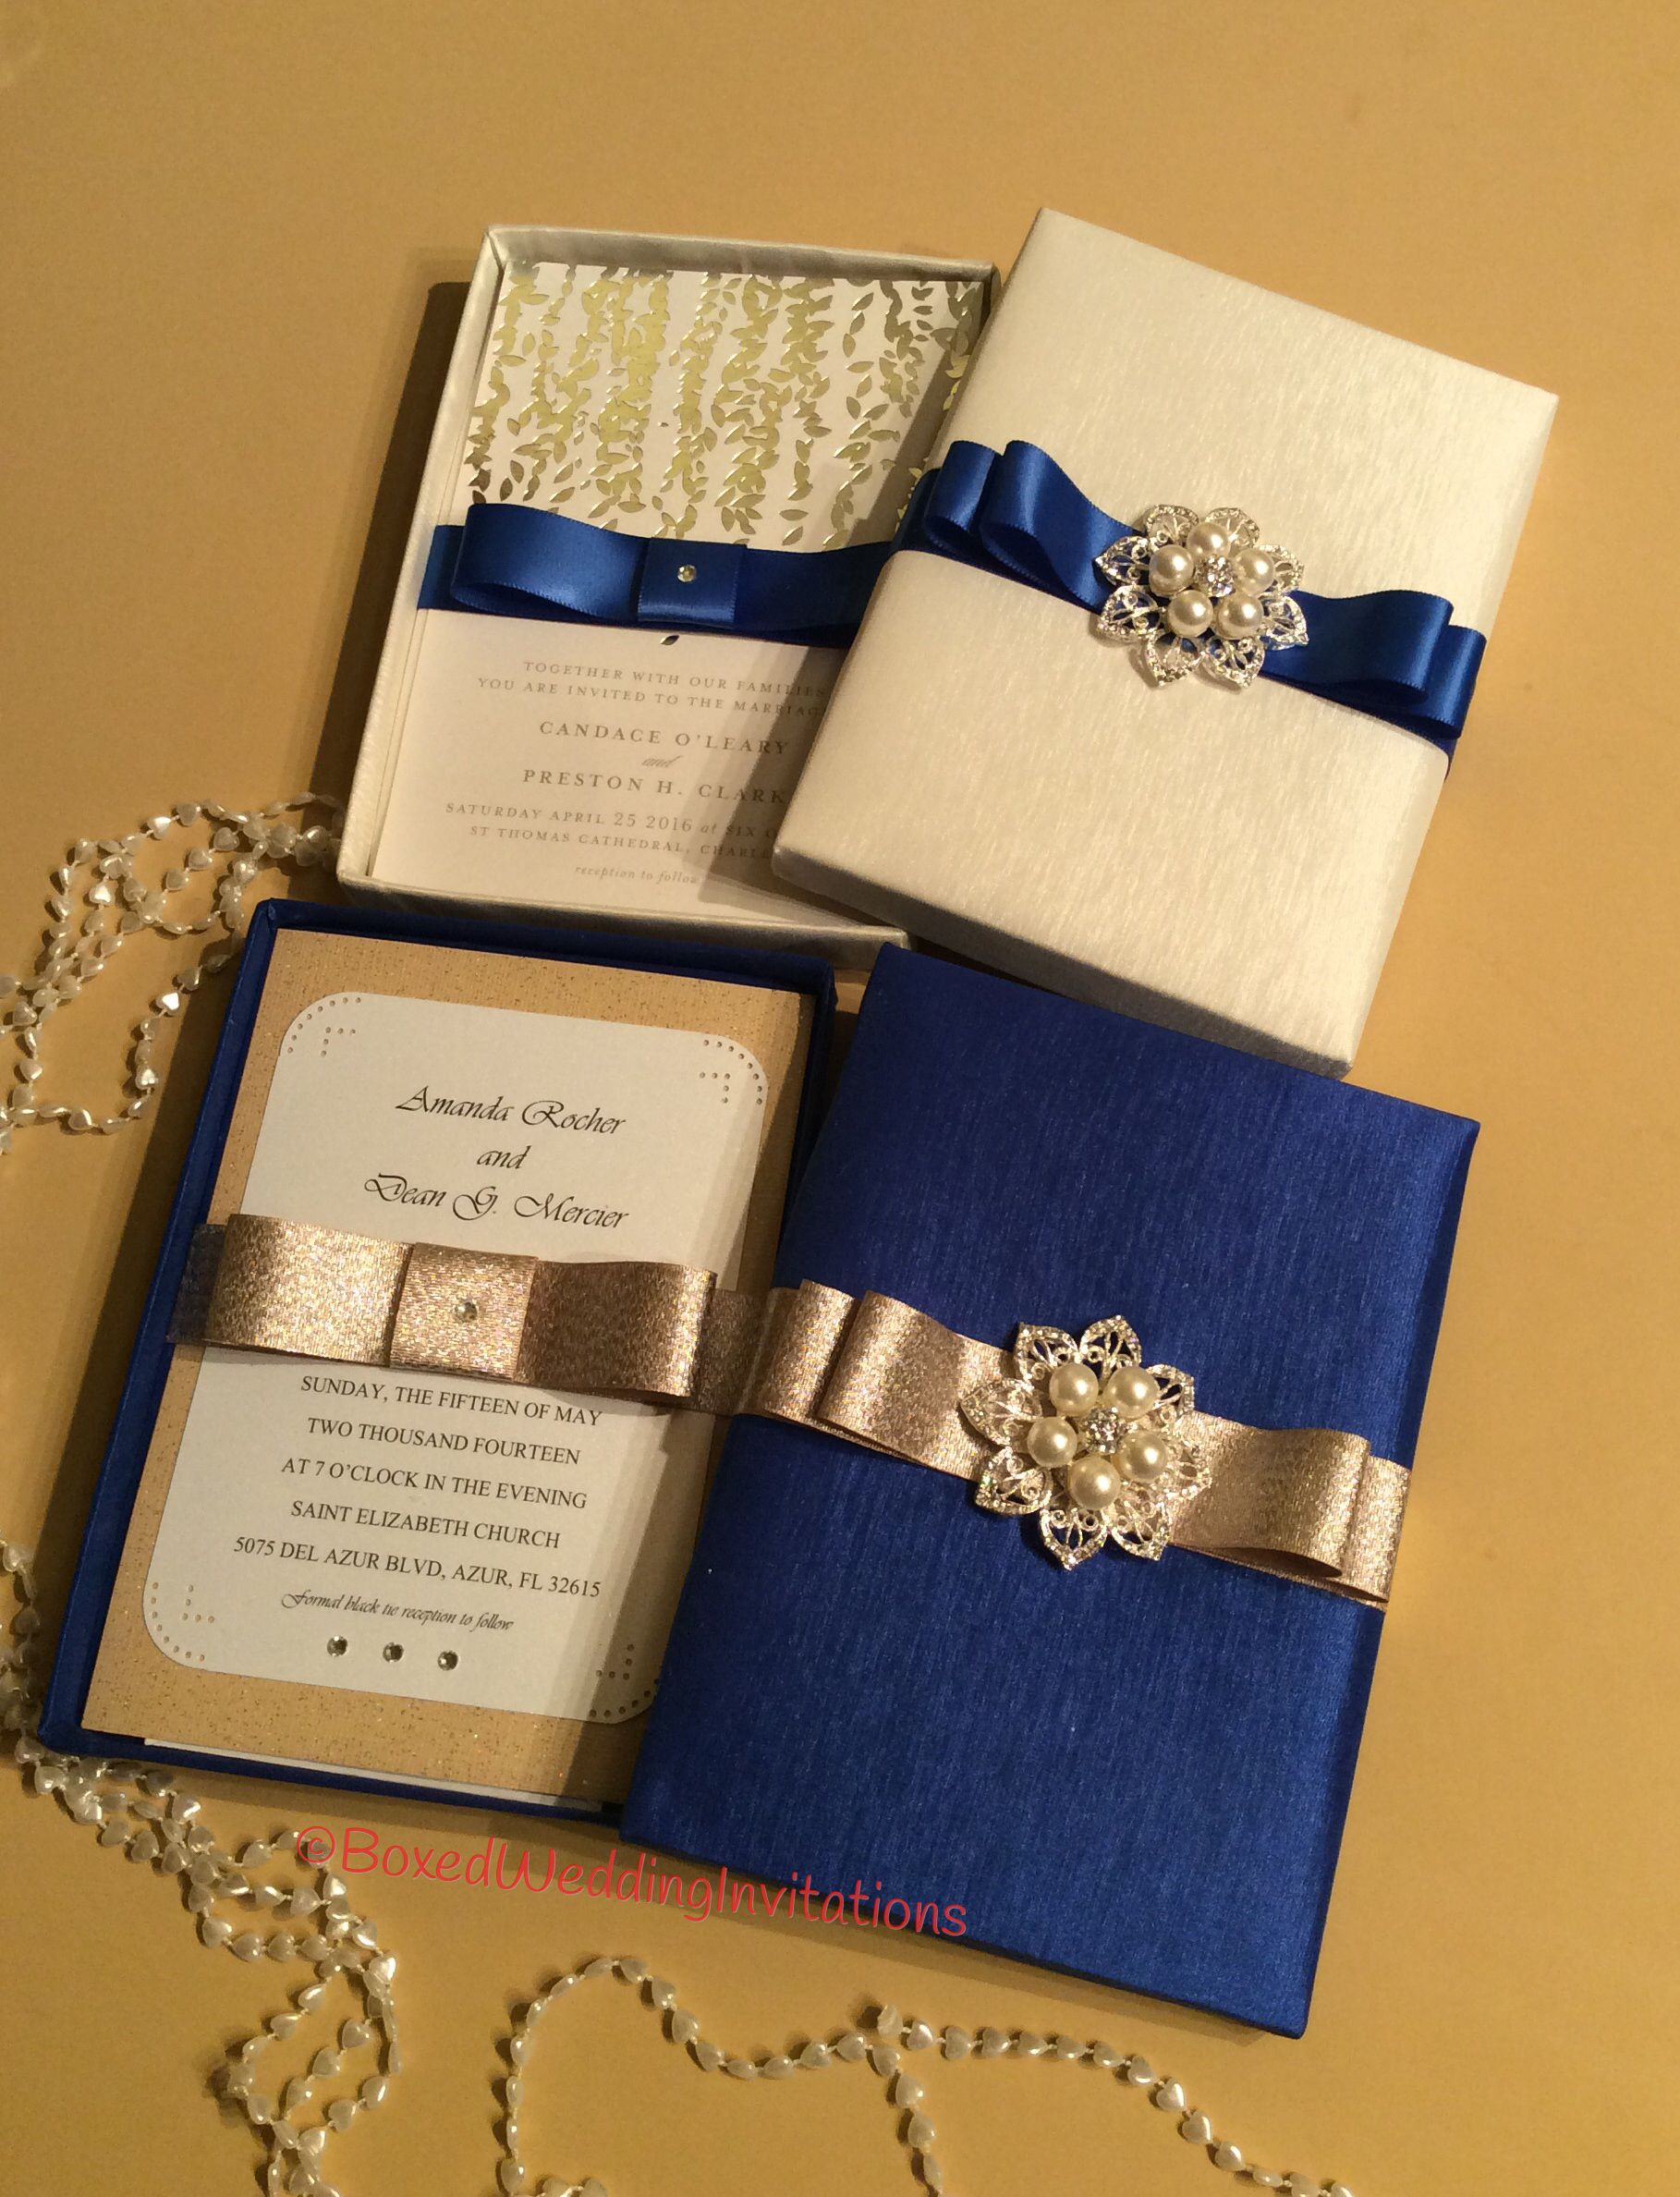 ✨Luxury Boxed Wedding Invitations✨ which one would you chose for your  upcomin… | Luxury wedding invitations box, Box wedding invitations, Luxury  wedding invitations